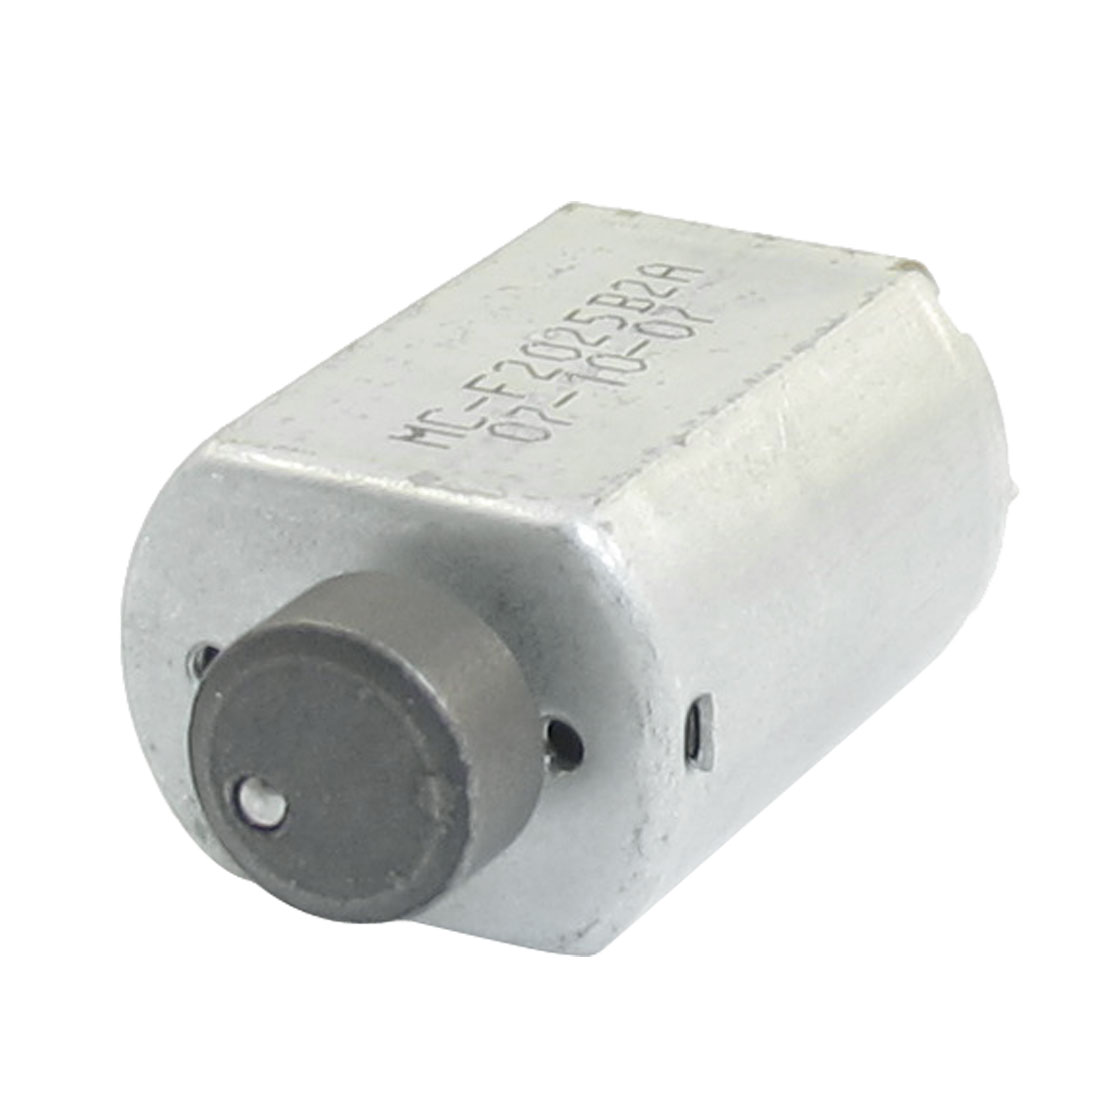 2-Pin-Terminals-6VDC-7000RPM-Output-Speed-Micro-Vibration-Motor